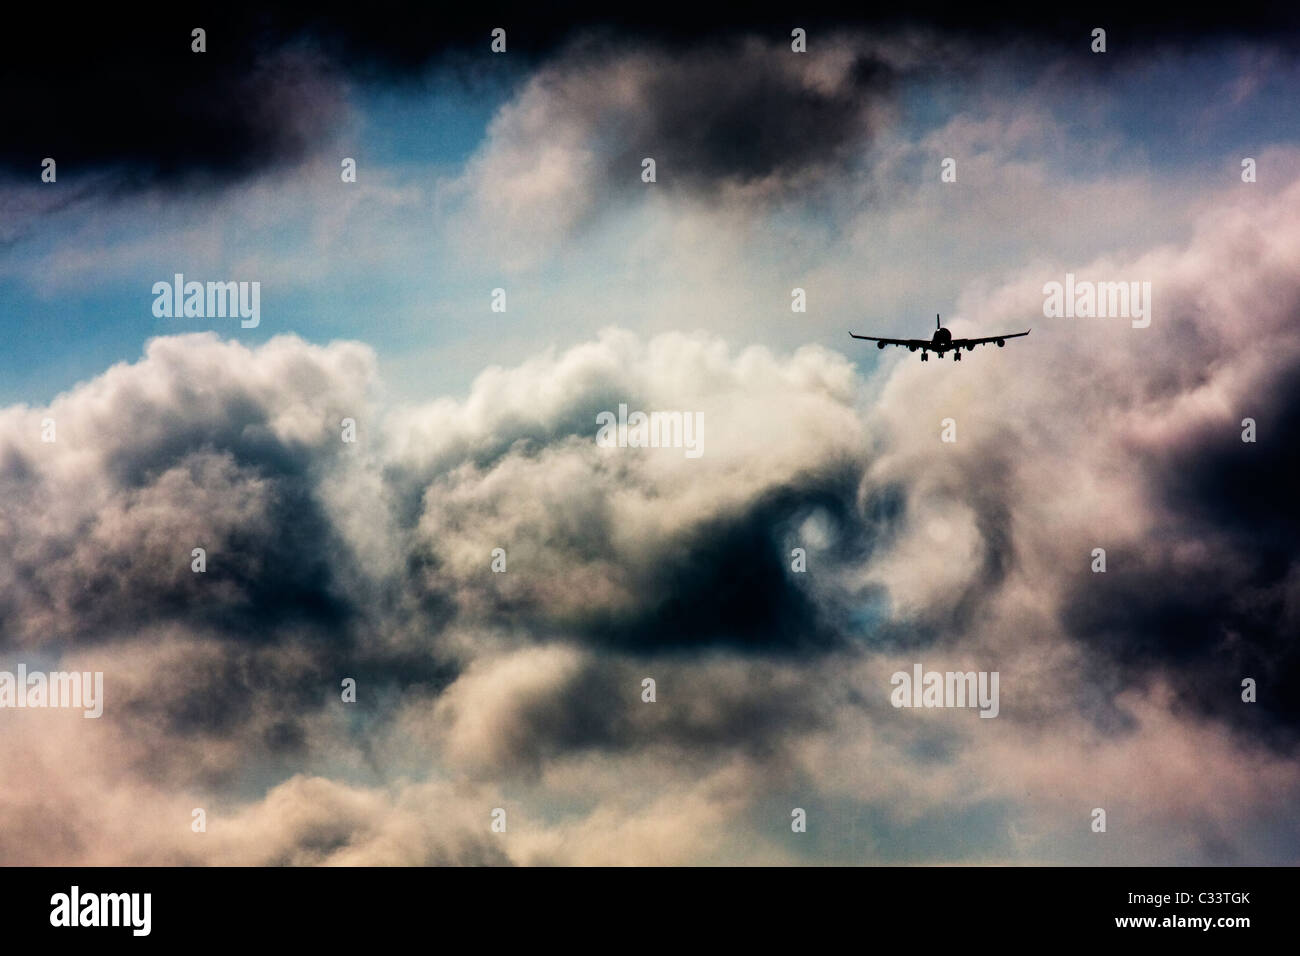 Wake turbulence forms behind commercial airliner. - Stock Image